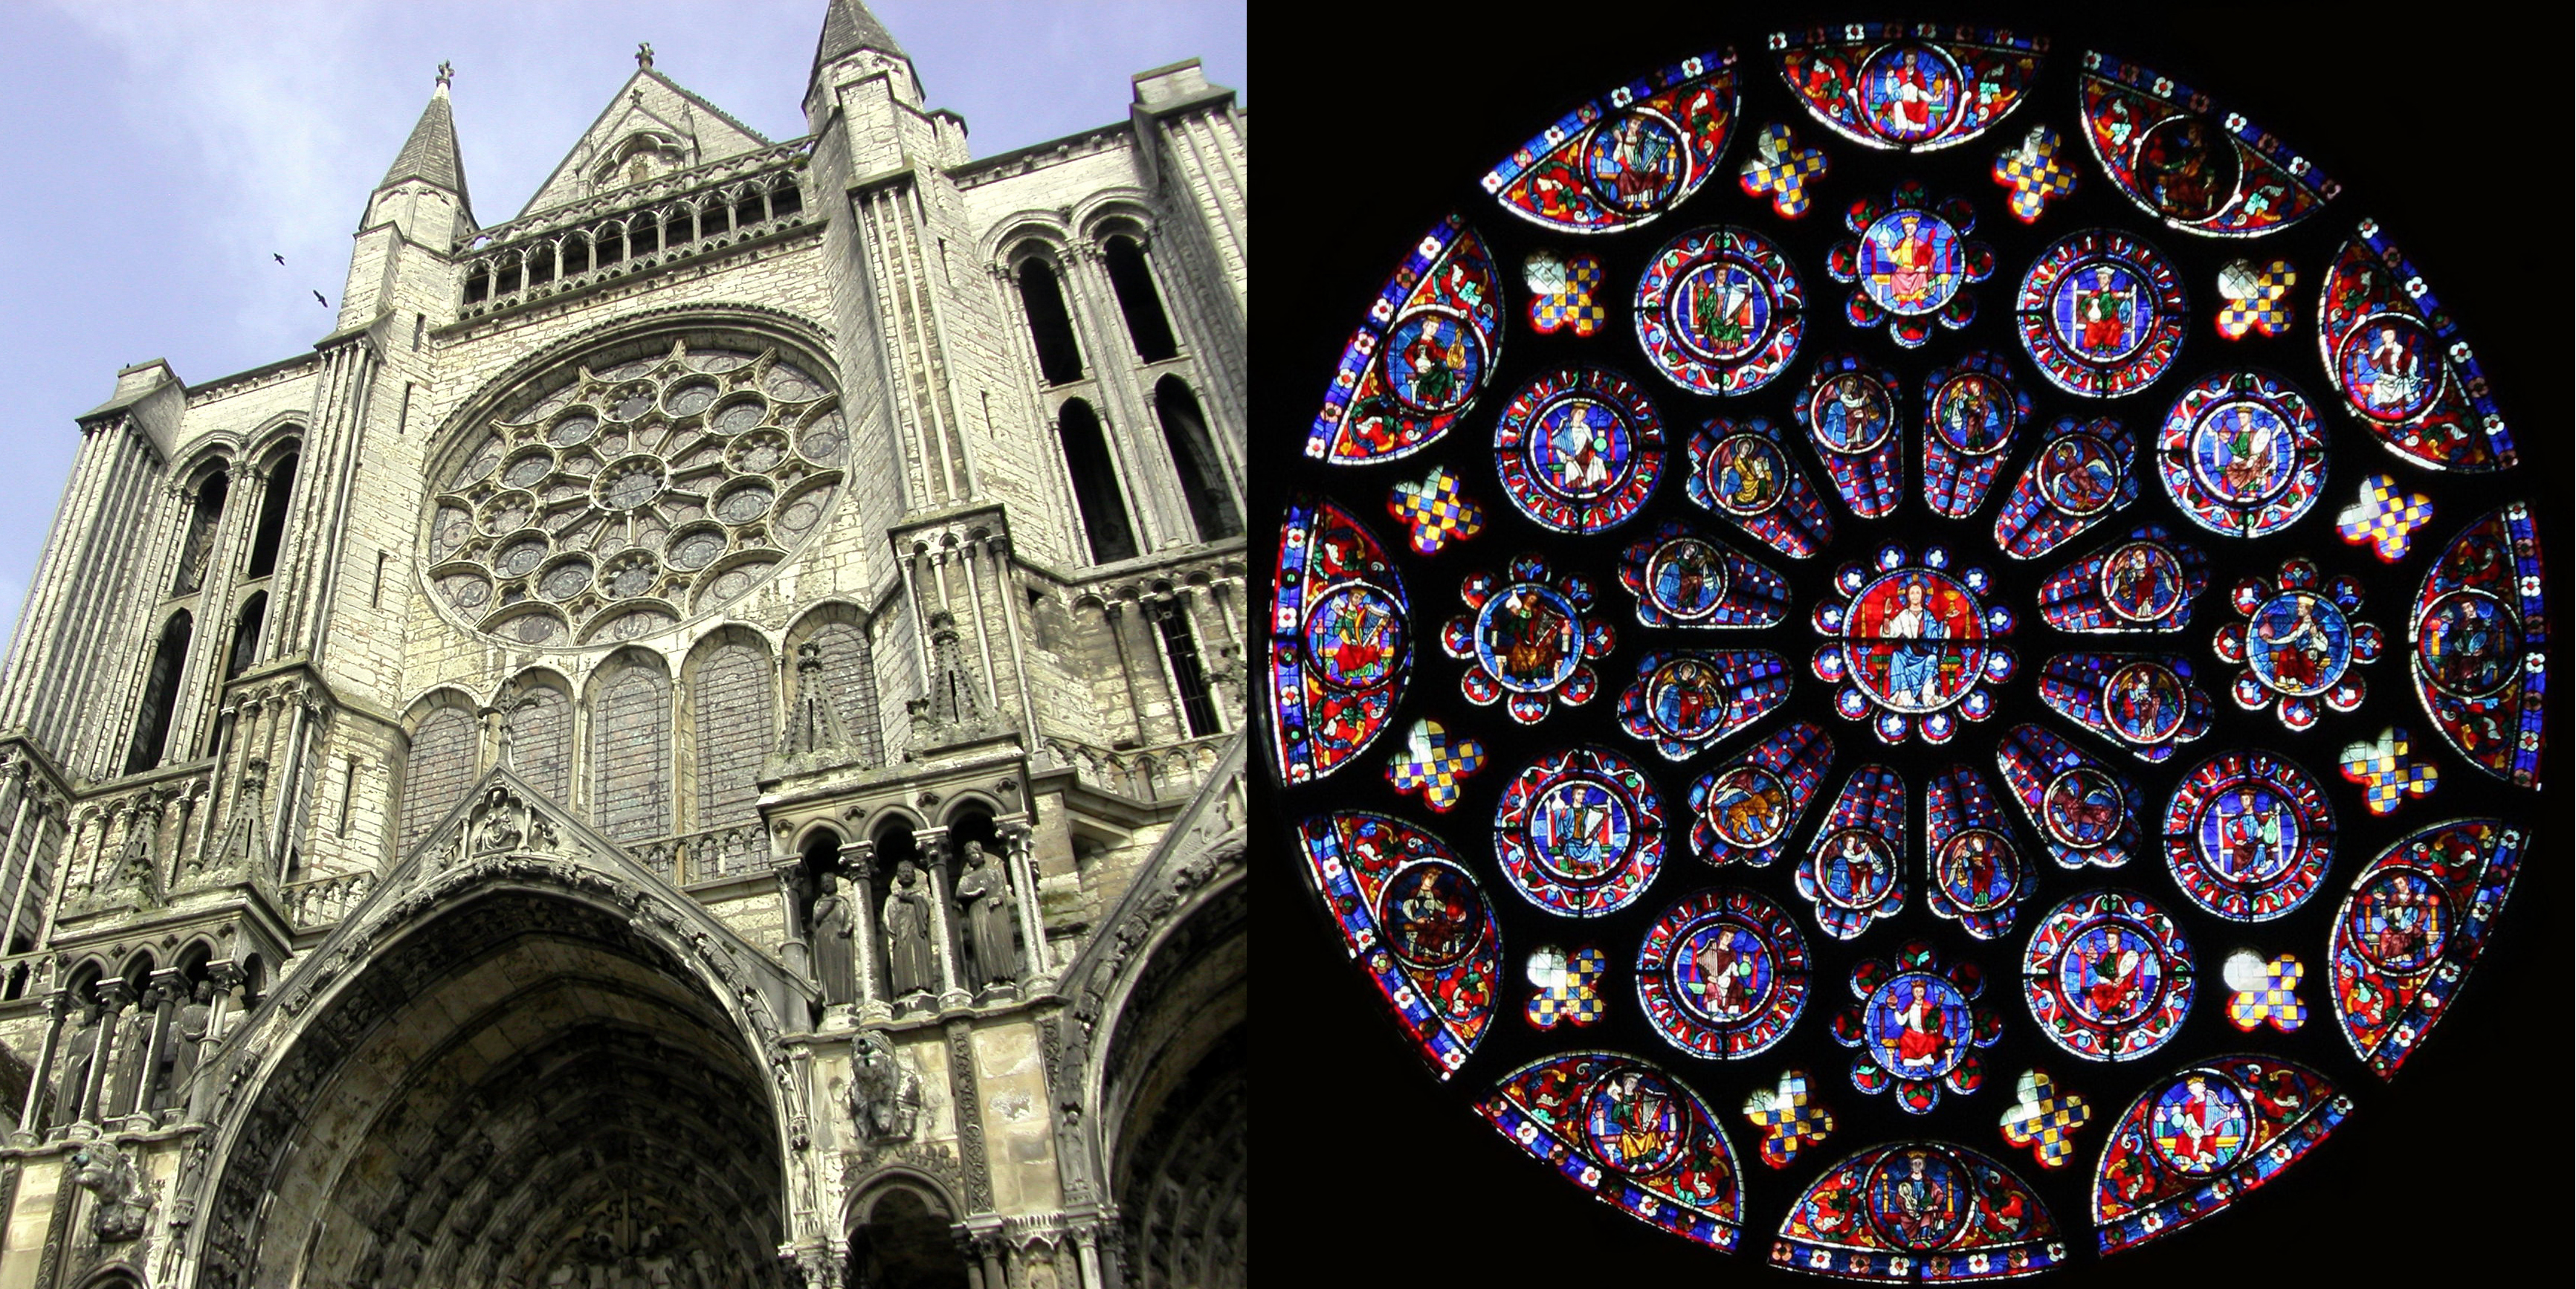 The Chartres Roses Richard Nilsen